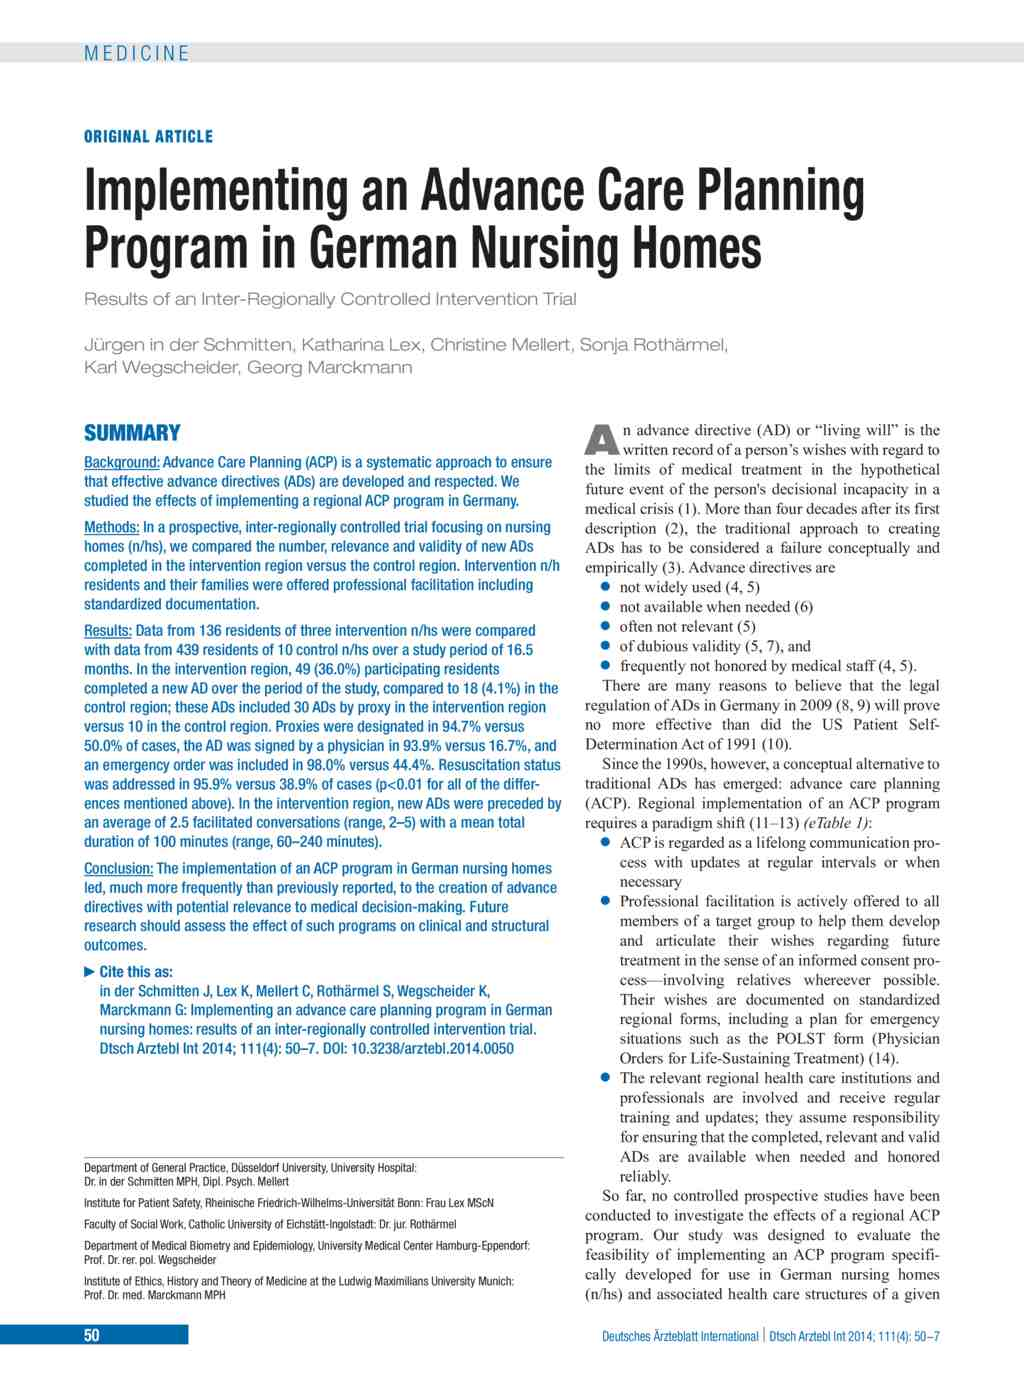 Implementing an Advance Care Planning Program in German Nursing ...